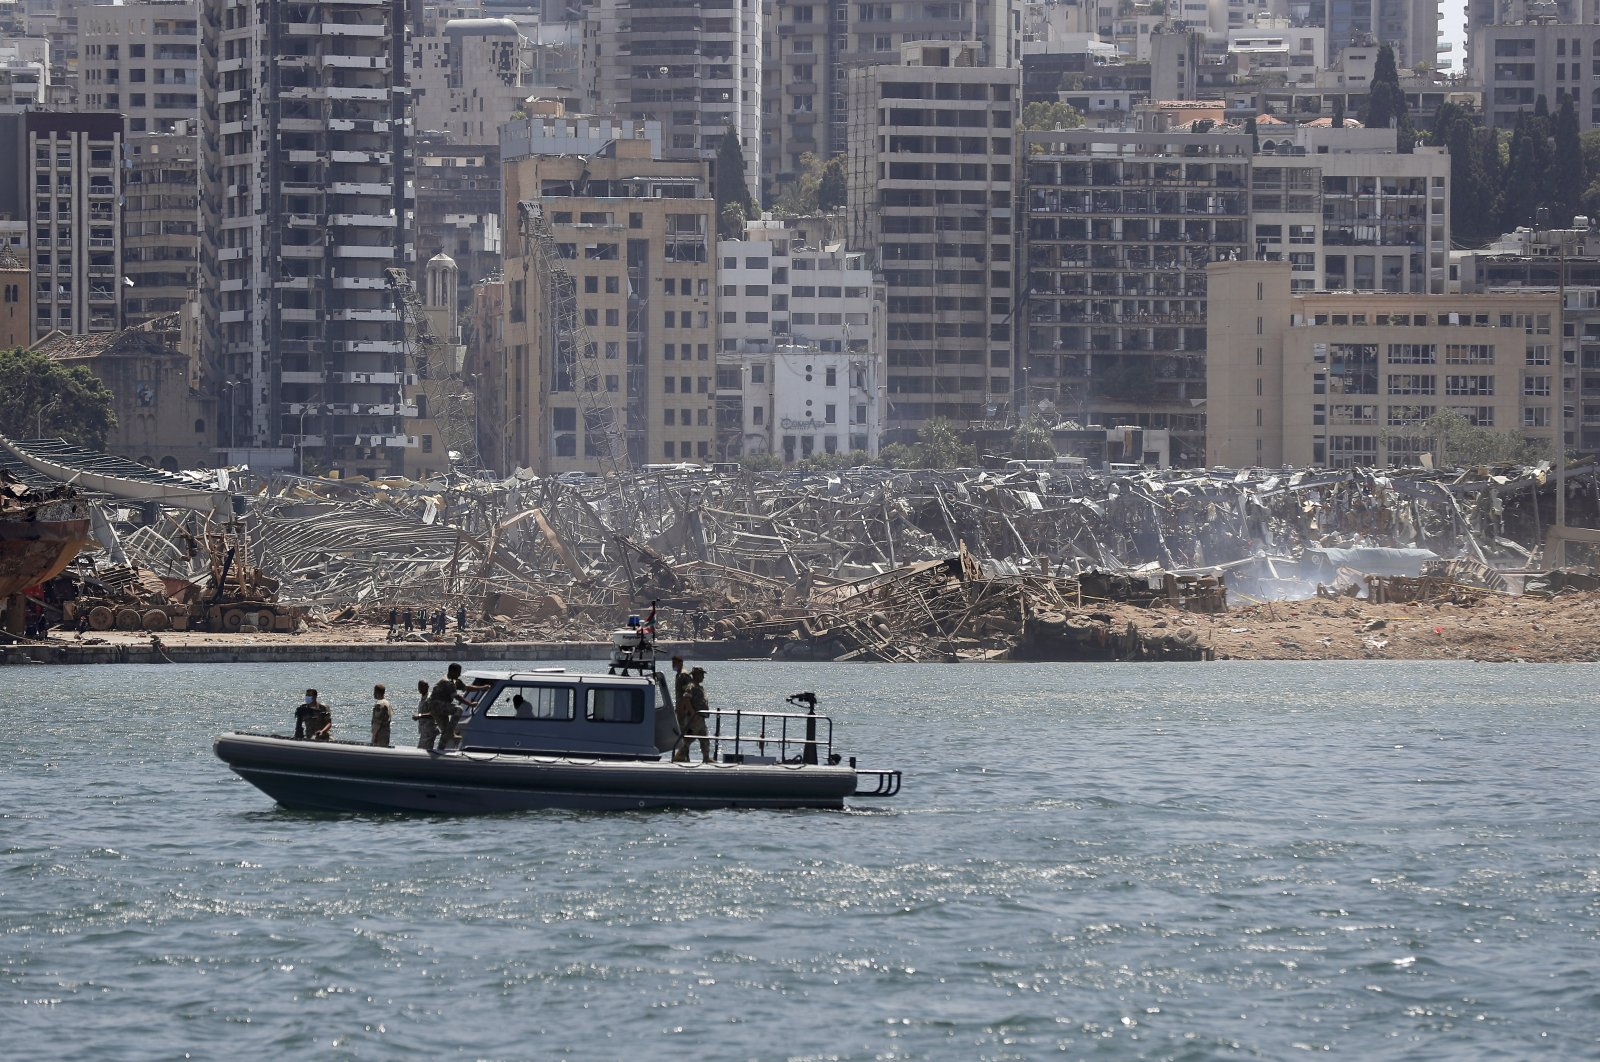 Lebanese navy patrol the sea in front of damaged resident buildings and the destroyed port warehouses at the scene of Tuesday's explosion that hit the seaport of Beirut, Lebanon, Saturday, Aug. 8, 2020. (AP Photo)